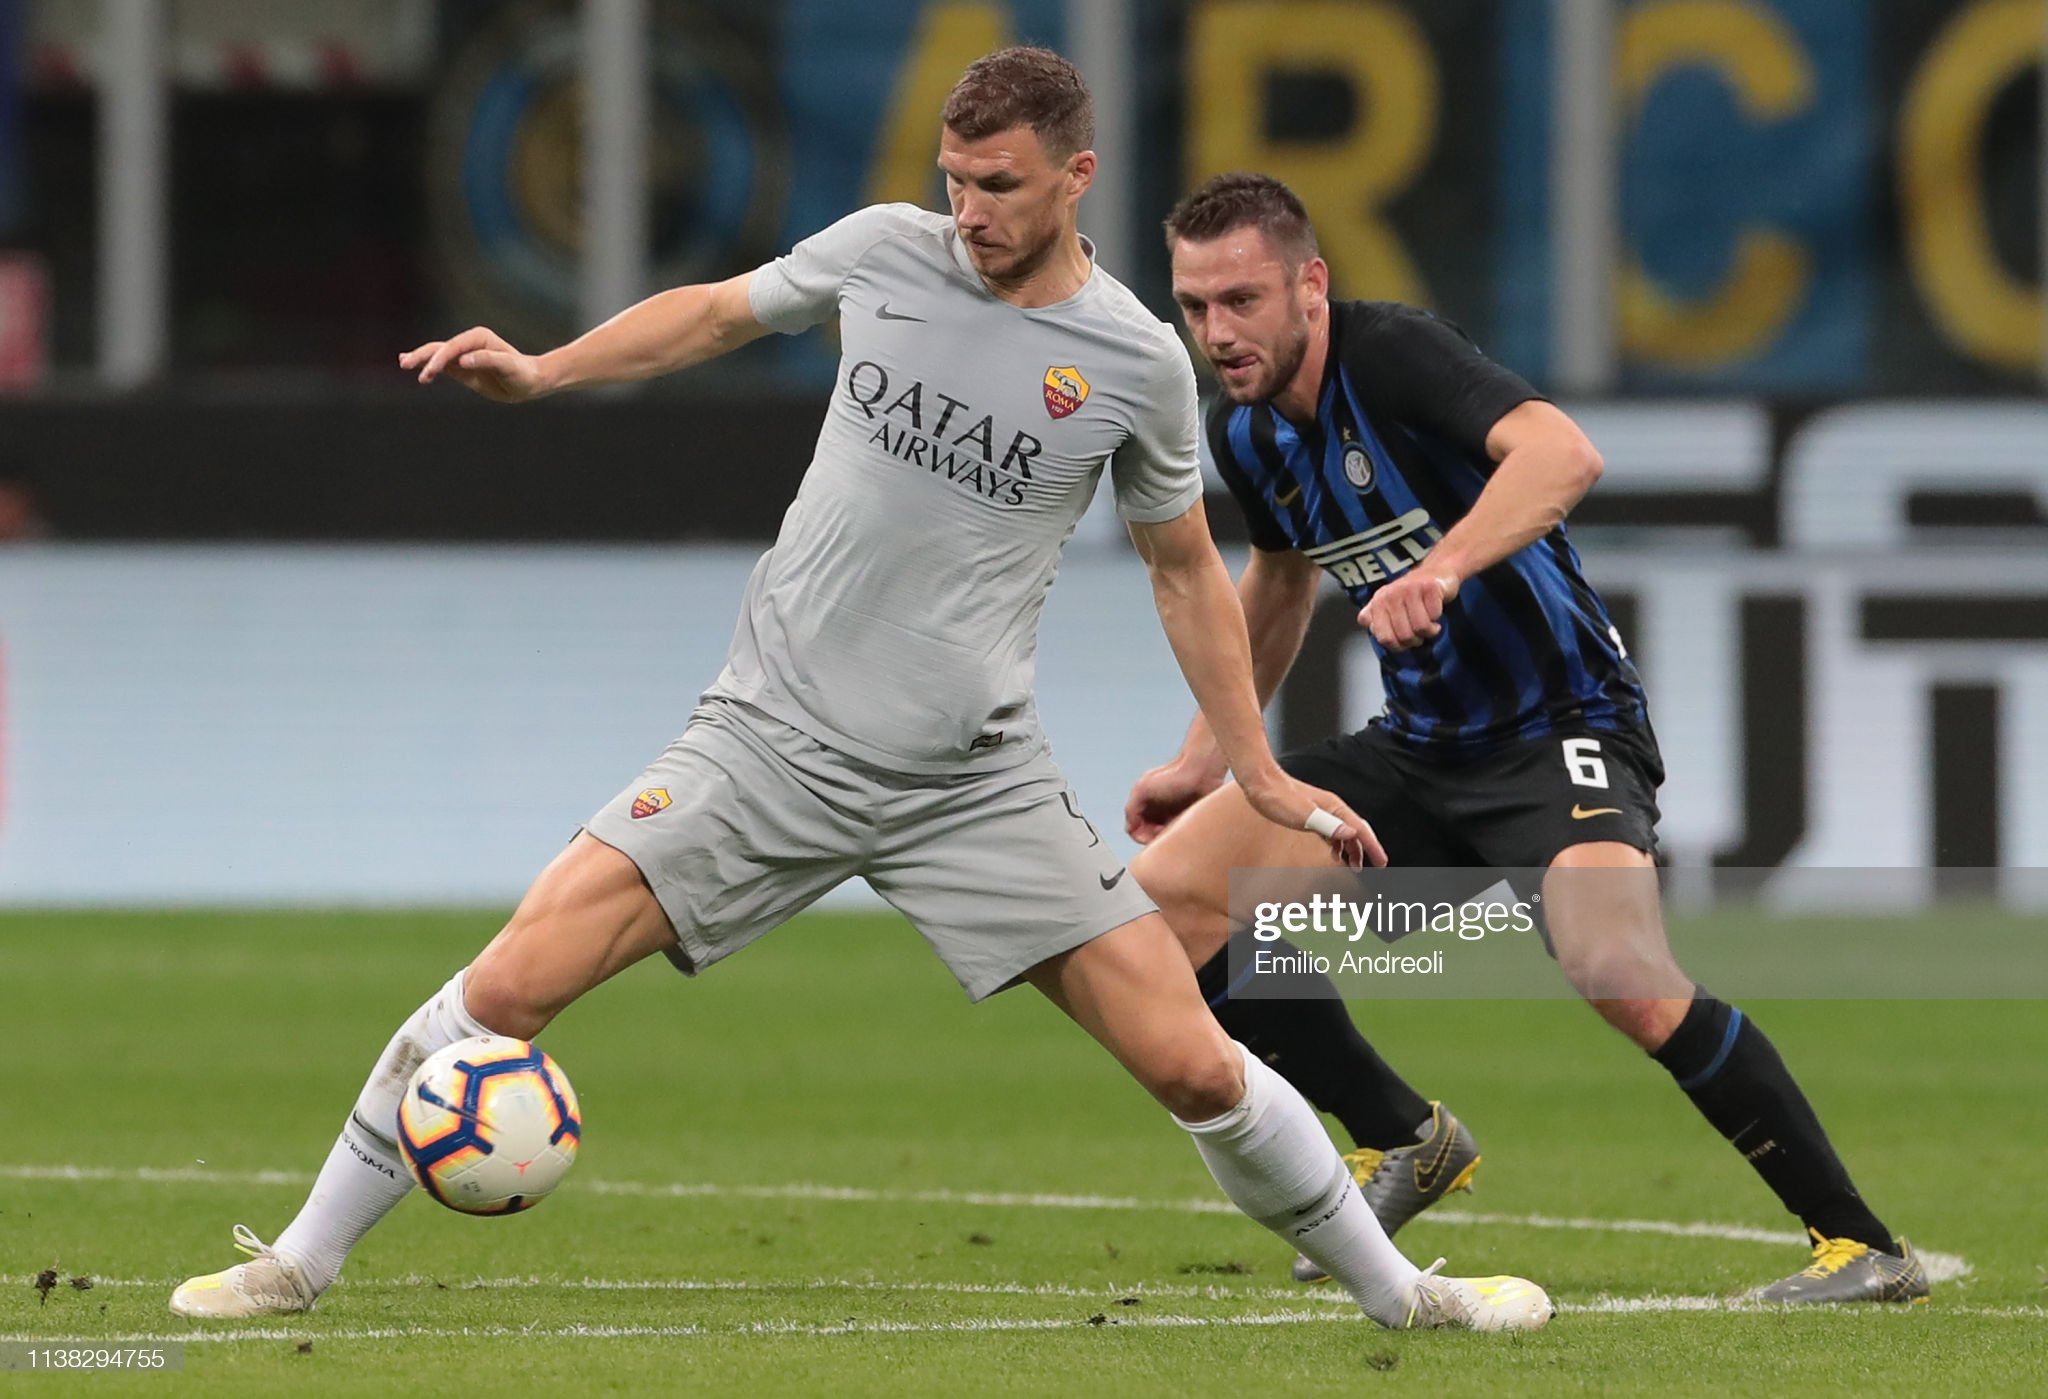 Internazionale v Roma preview, prediction and odds